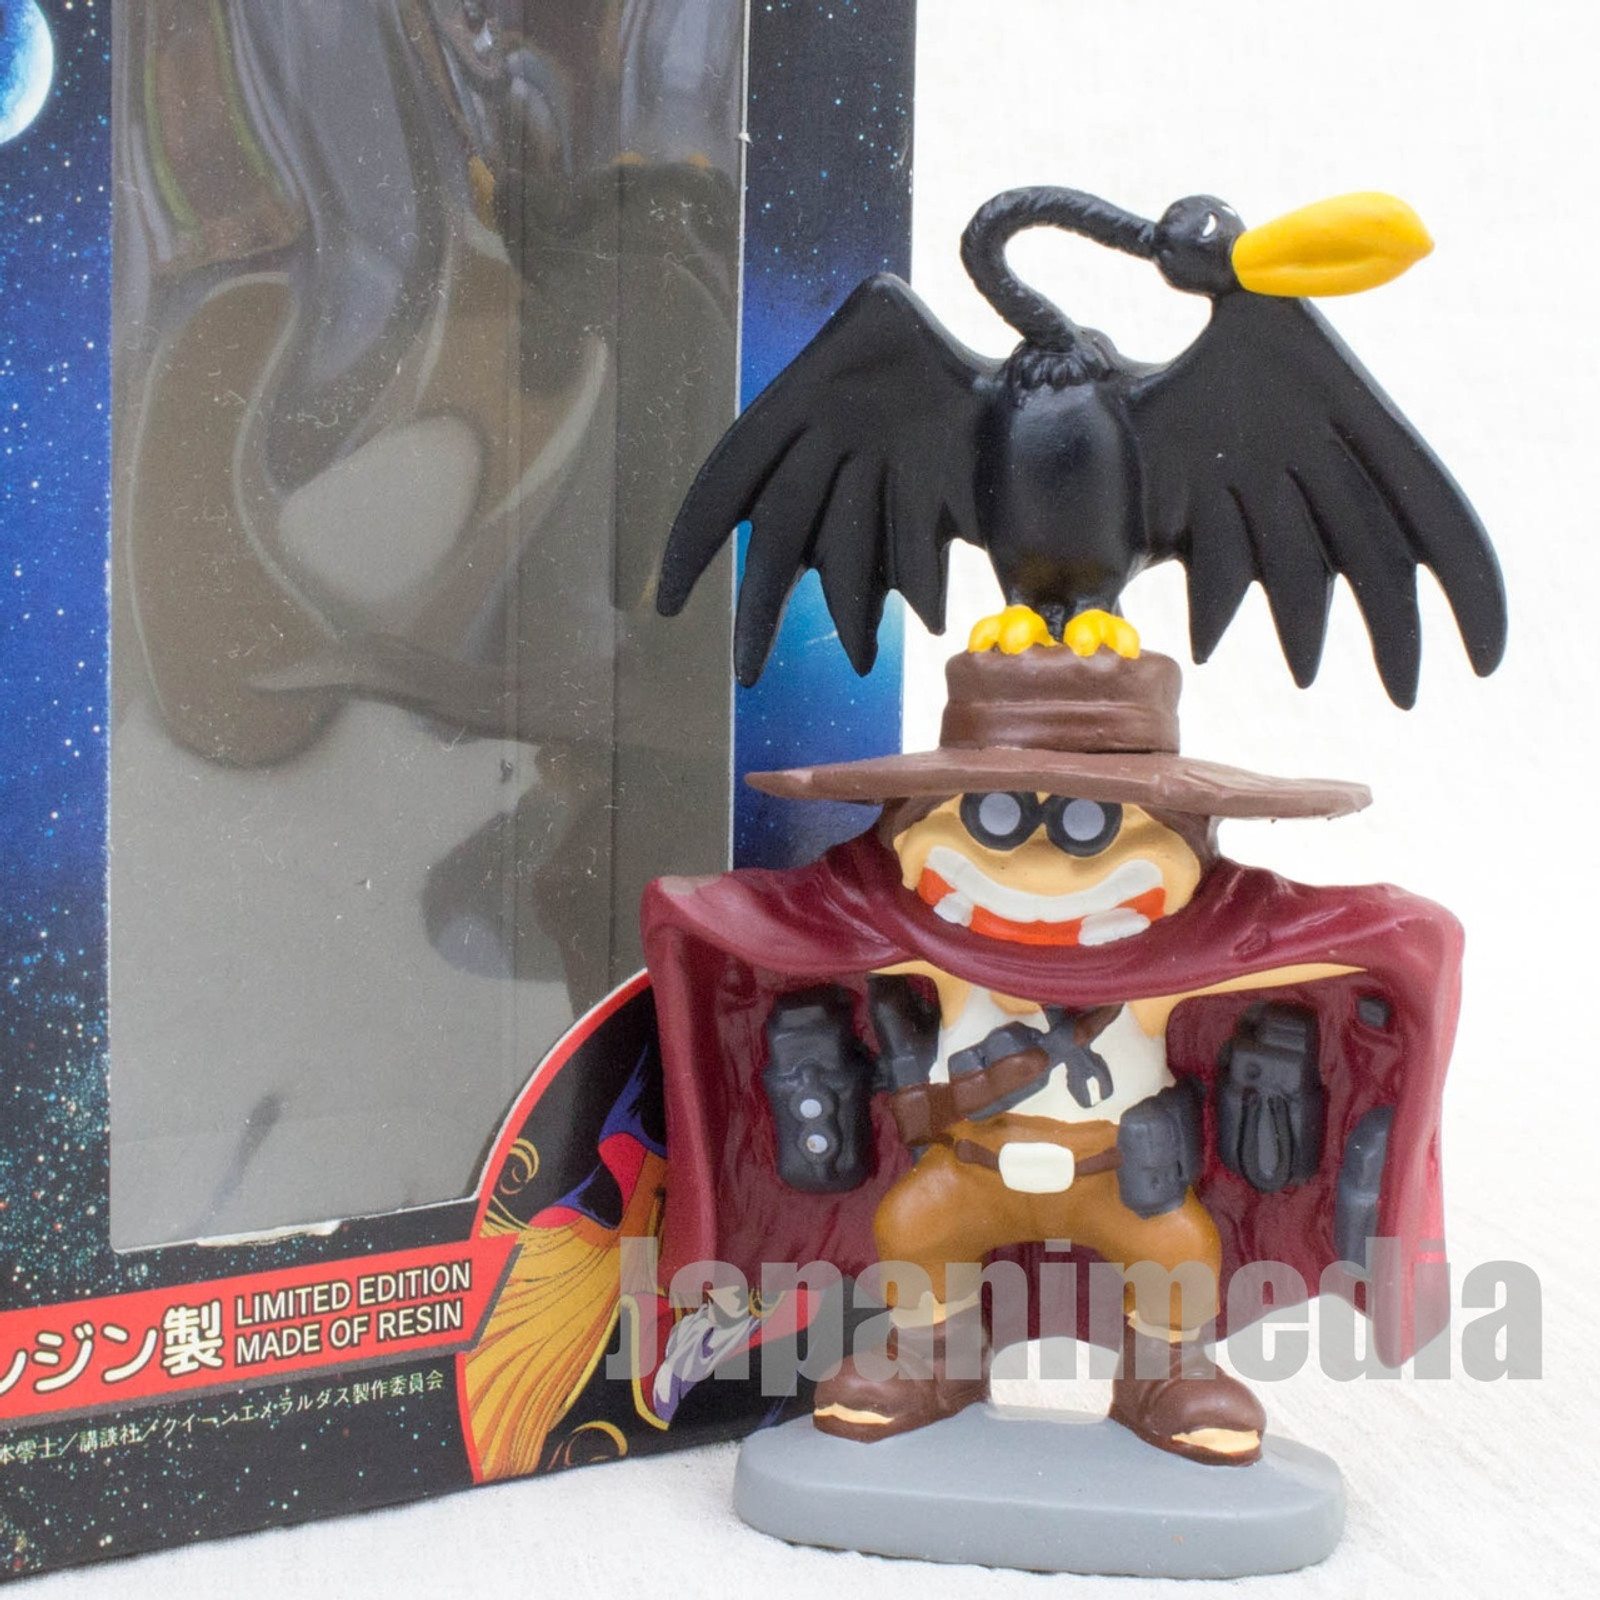 Queen Emeraldas Tochiro & Tori-san Resin Figure Reiji Matsumoto JAPAN ANIME